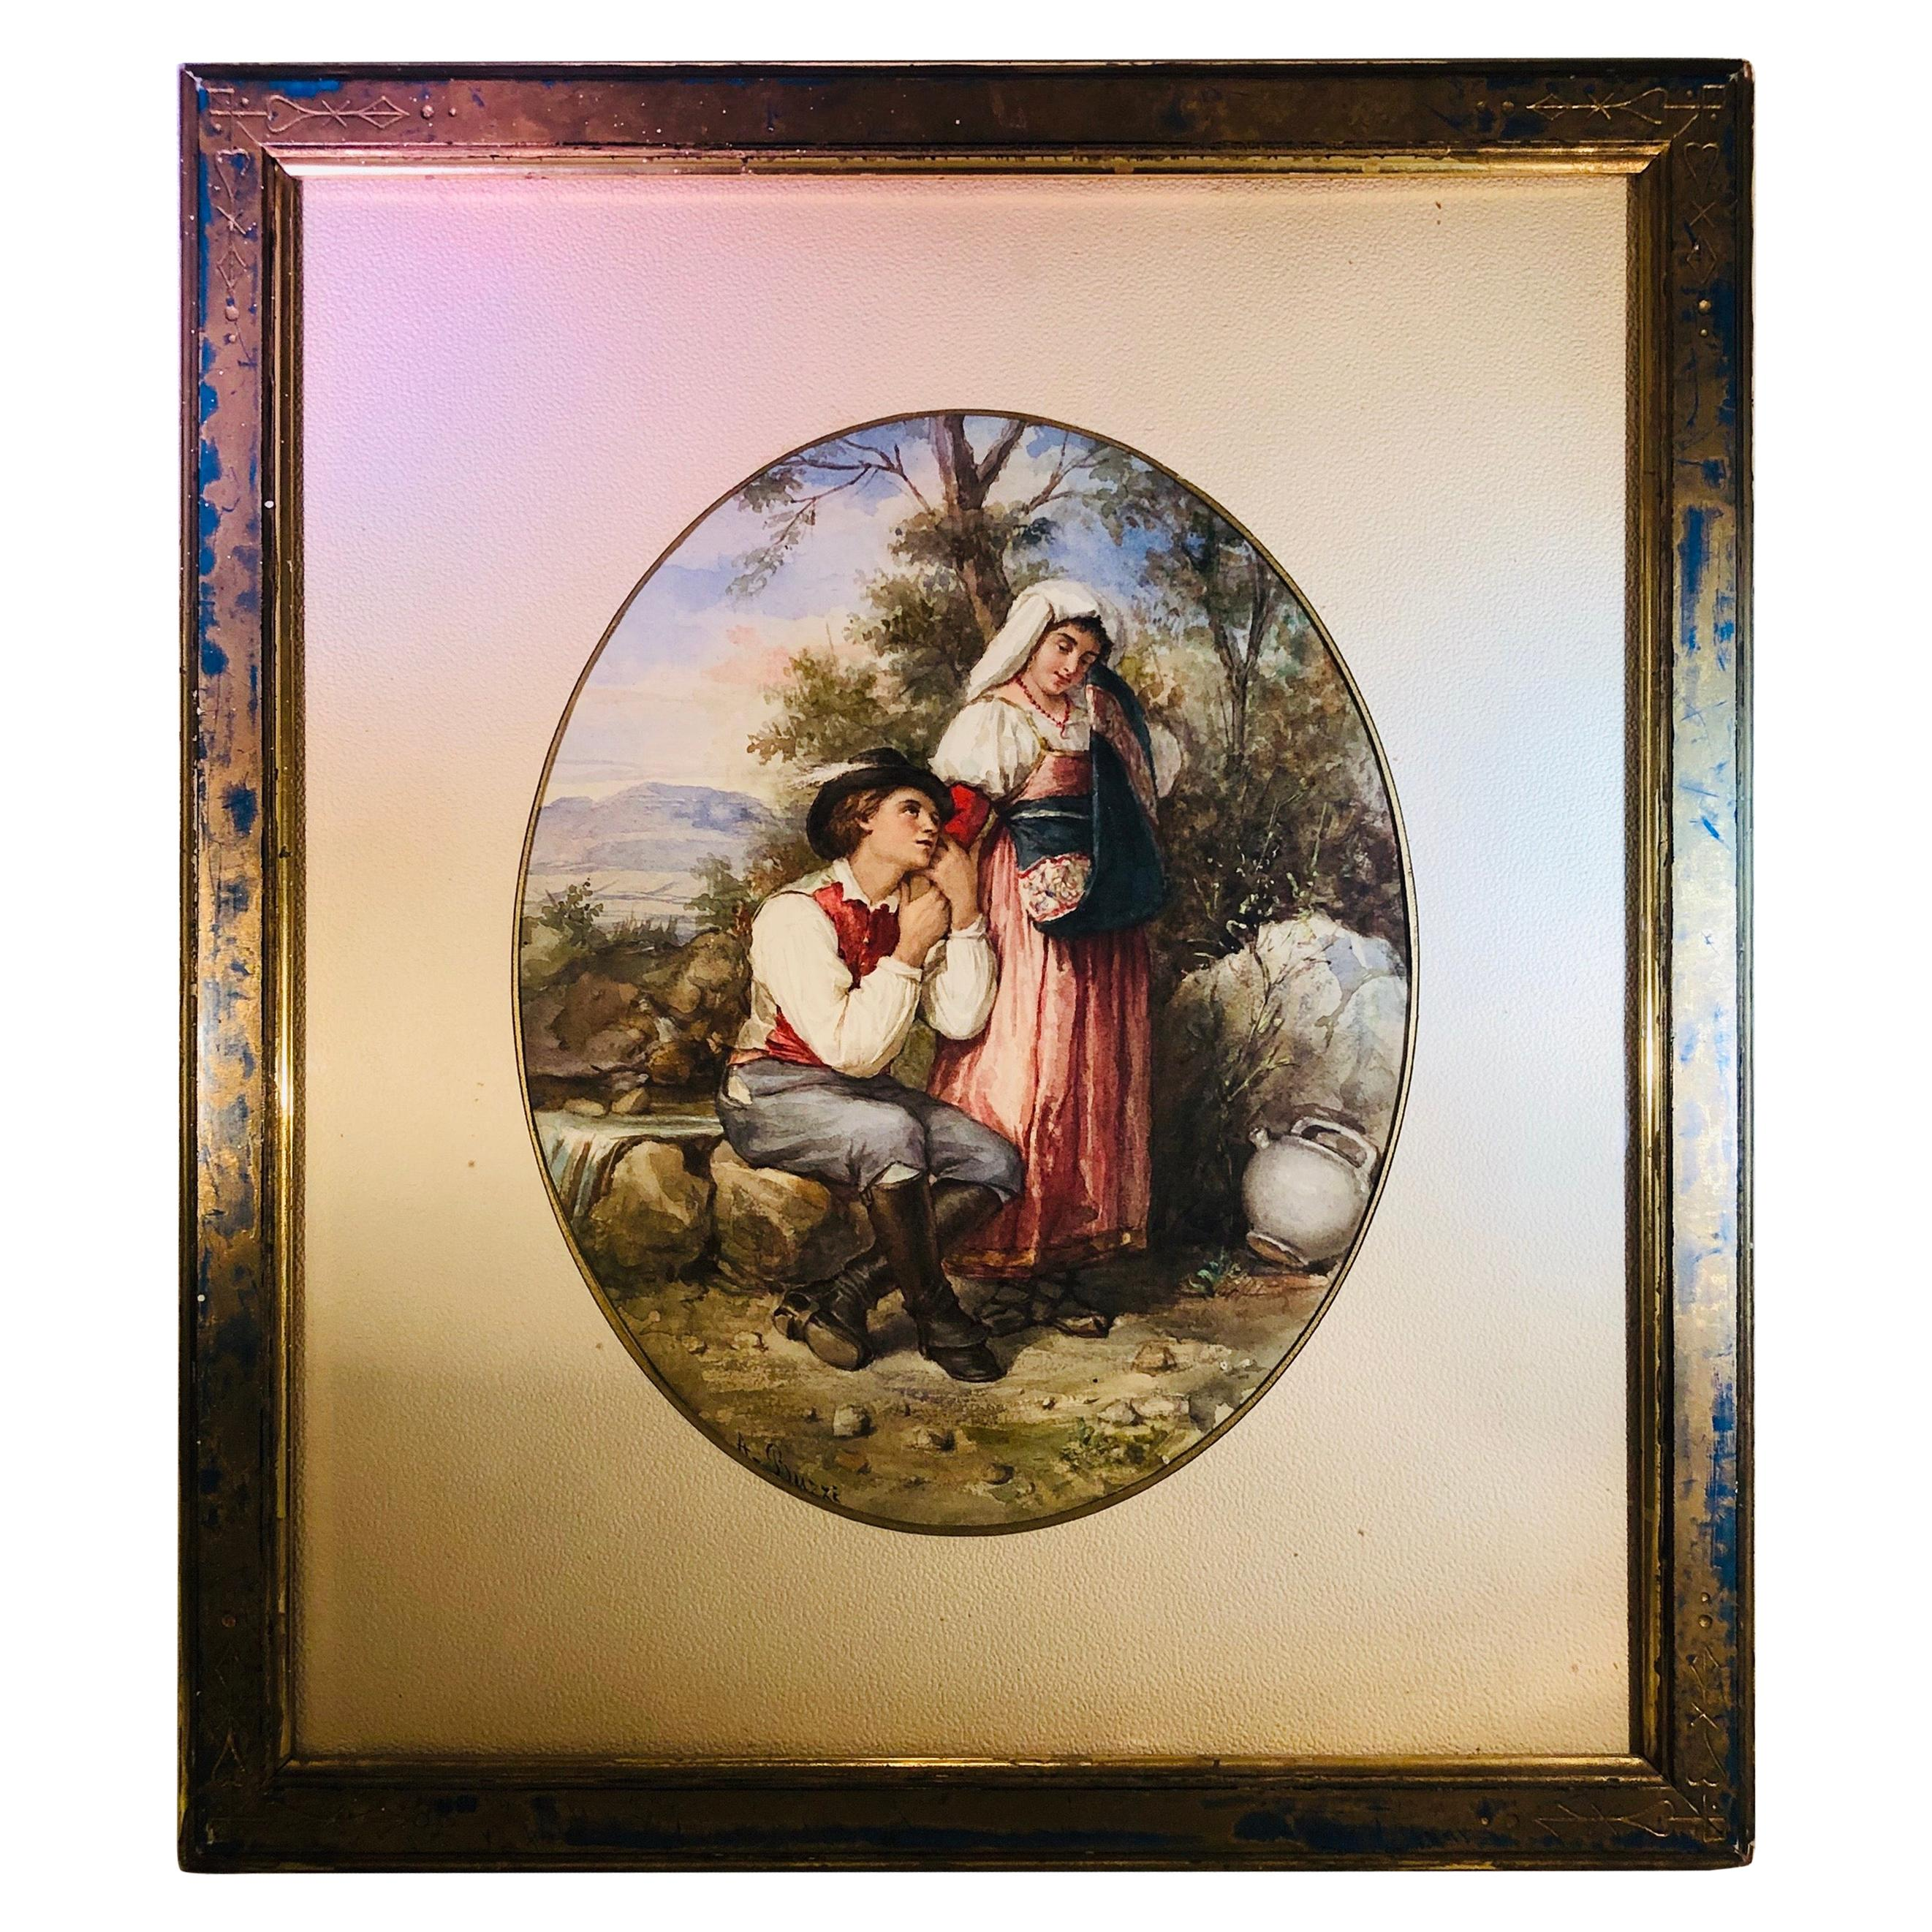 Watercolor Painting of Lovers in the Woods Artist Signed A. Buzzi